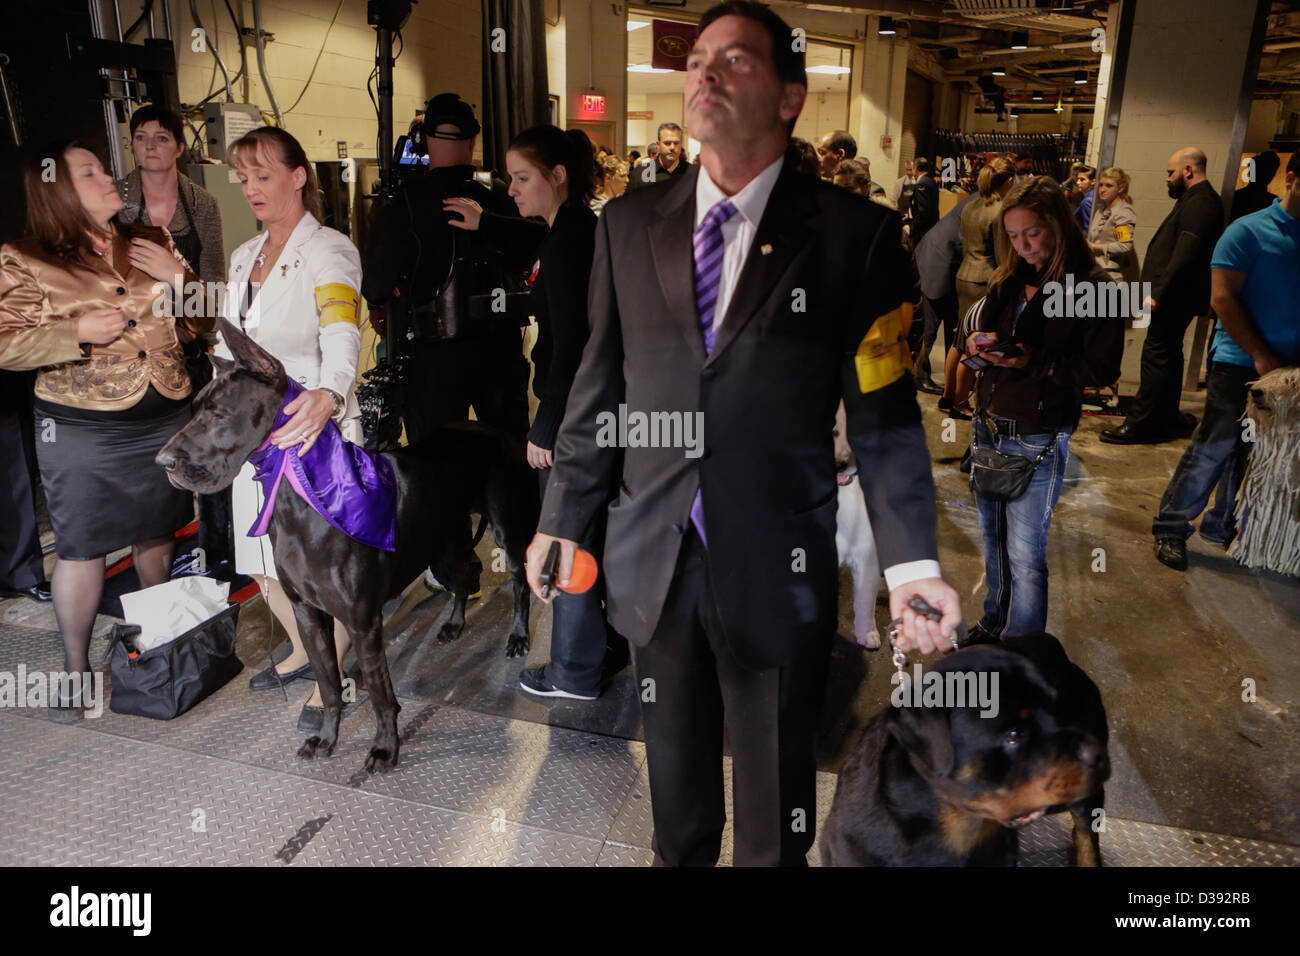 New York City, US, 12 February 2013. Working dogs and their handlers wait in the wings at the 137th annual Westminster Stock Photo